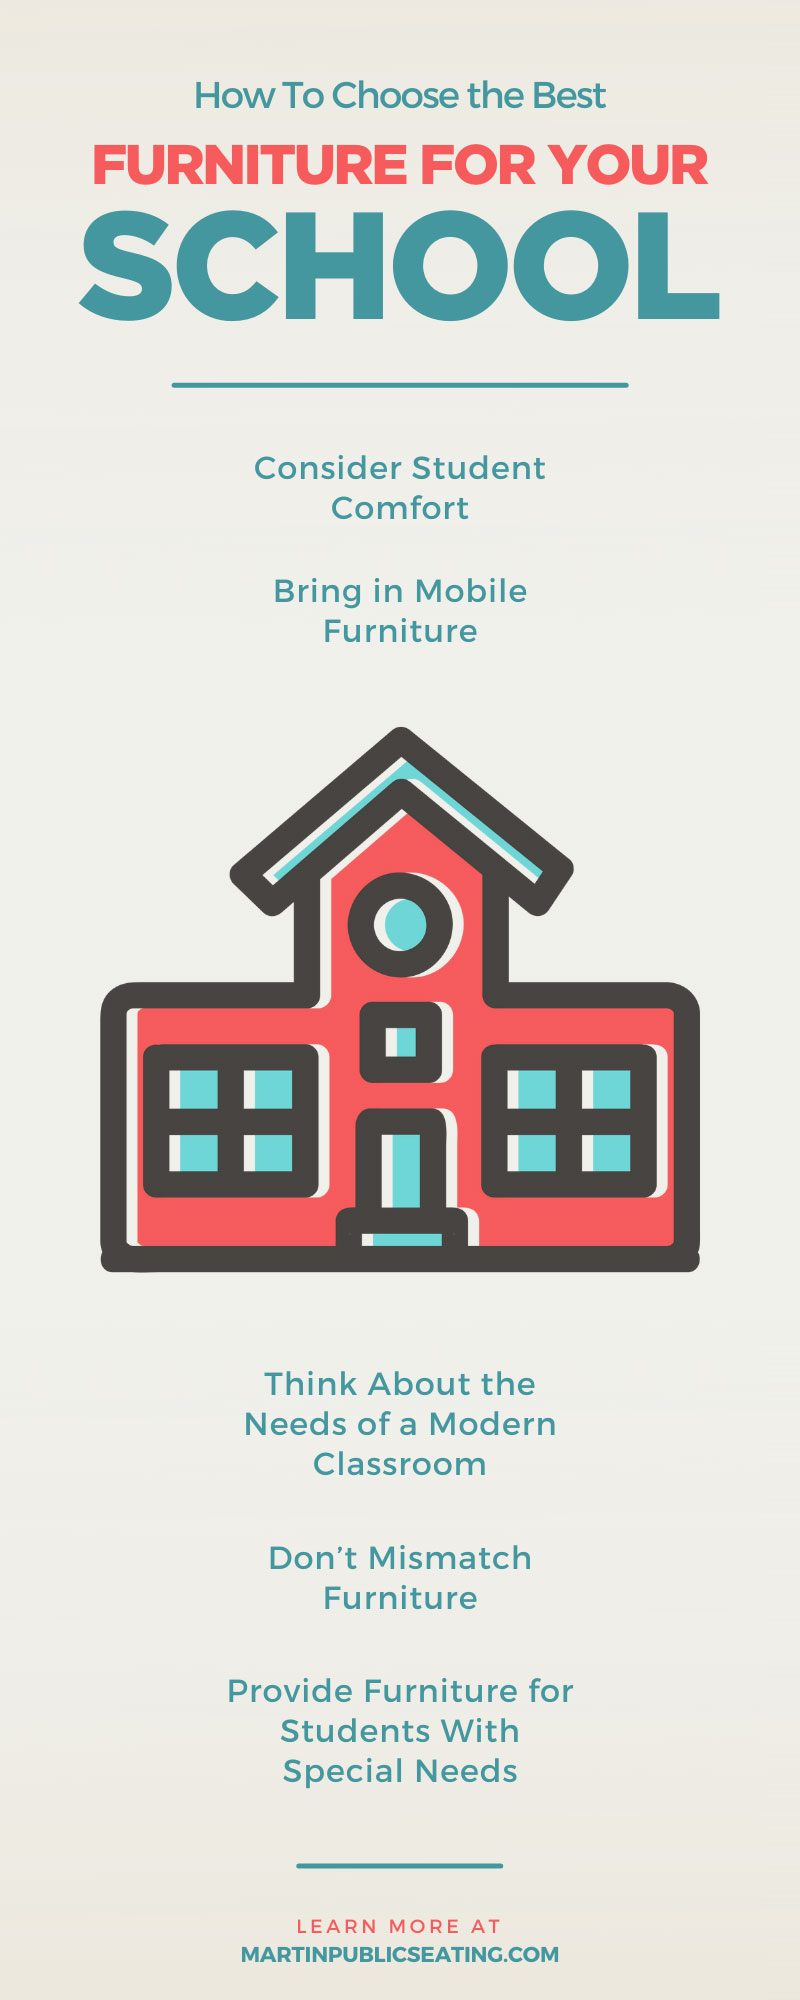 How To Choose the Best Furniture for Your School